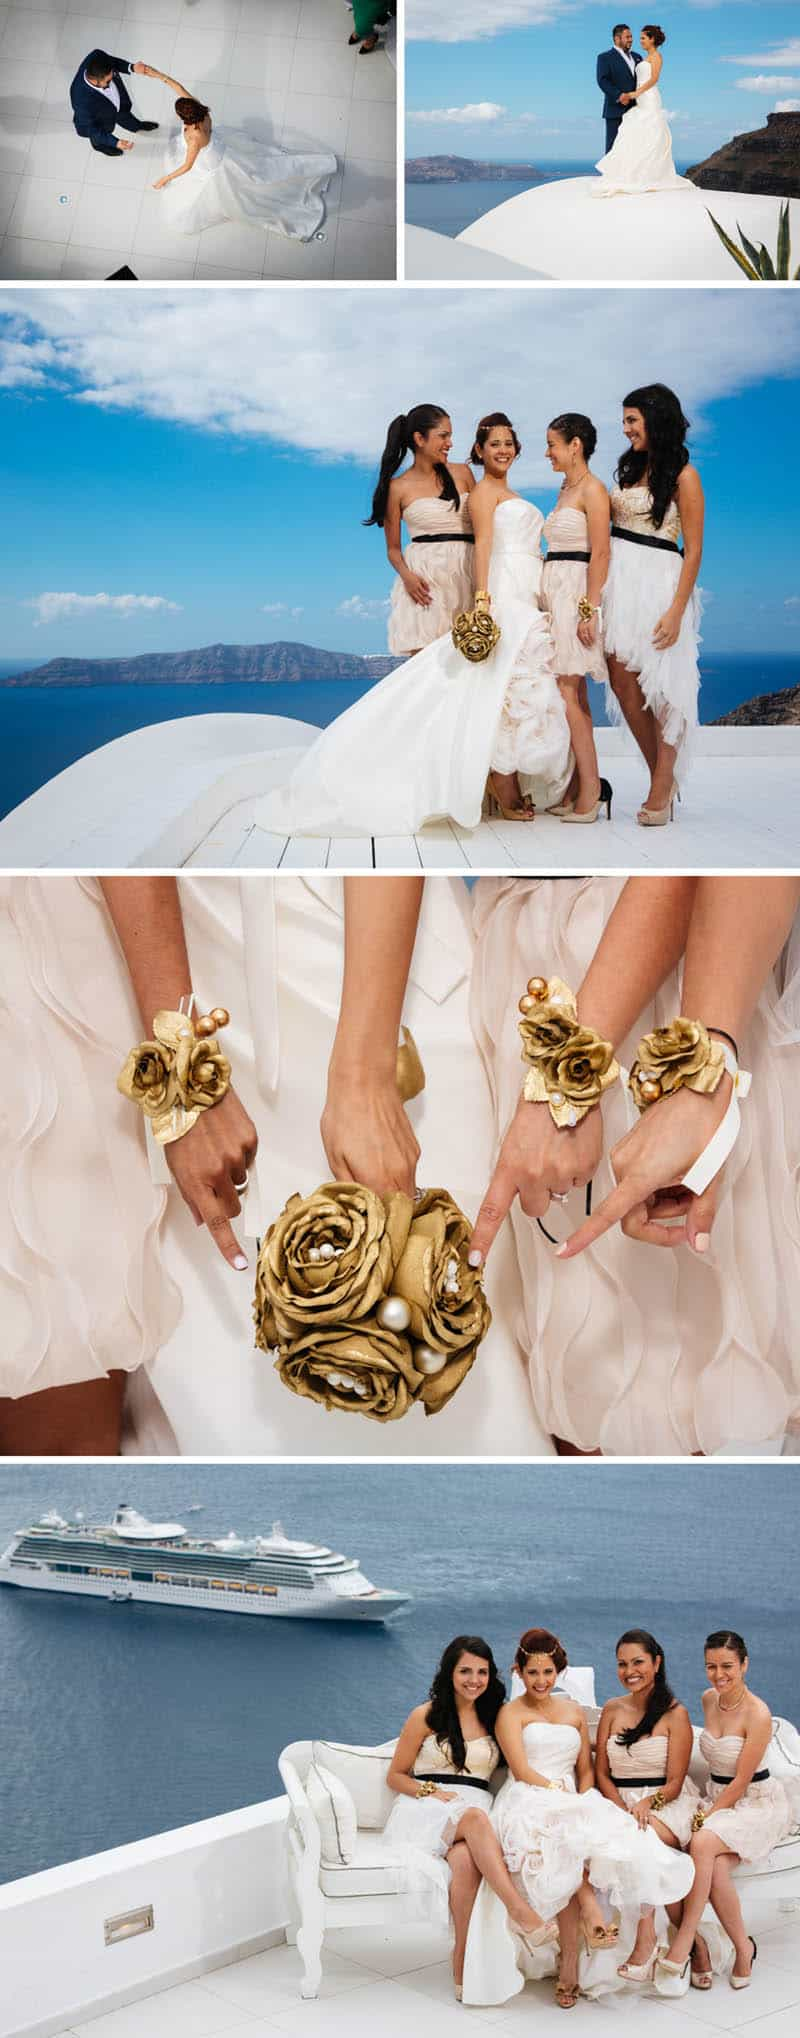 A Travel Themed Destination Wedding in Santorini 6